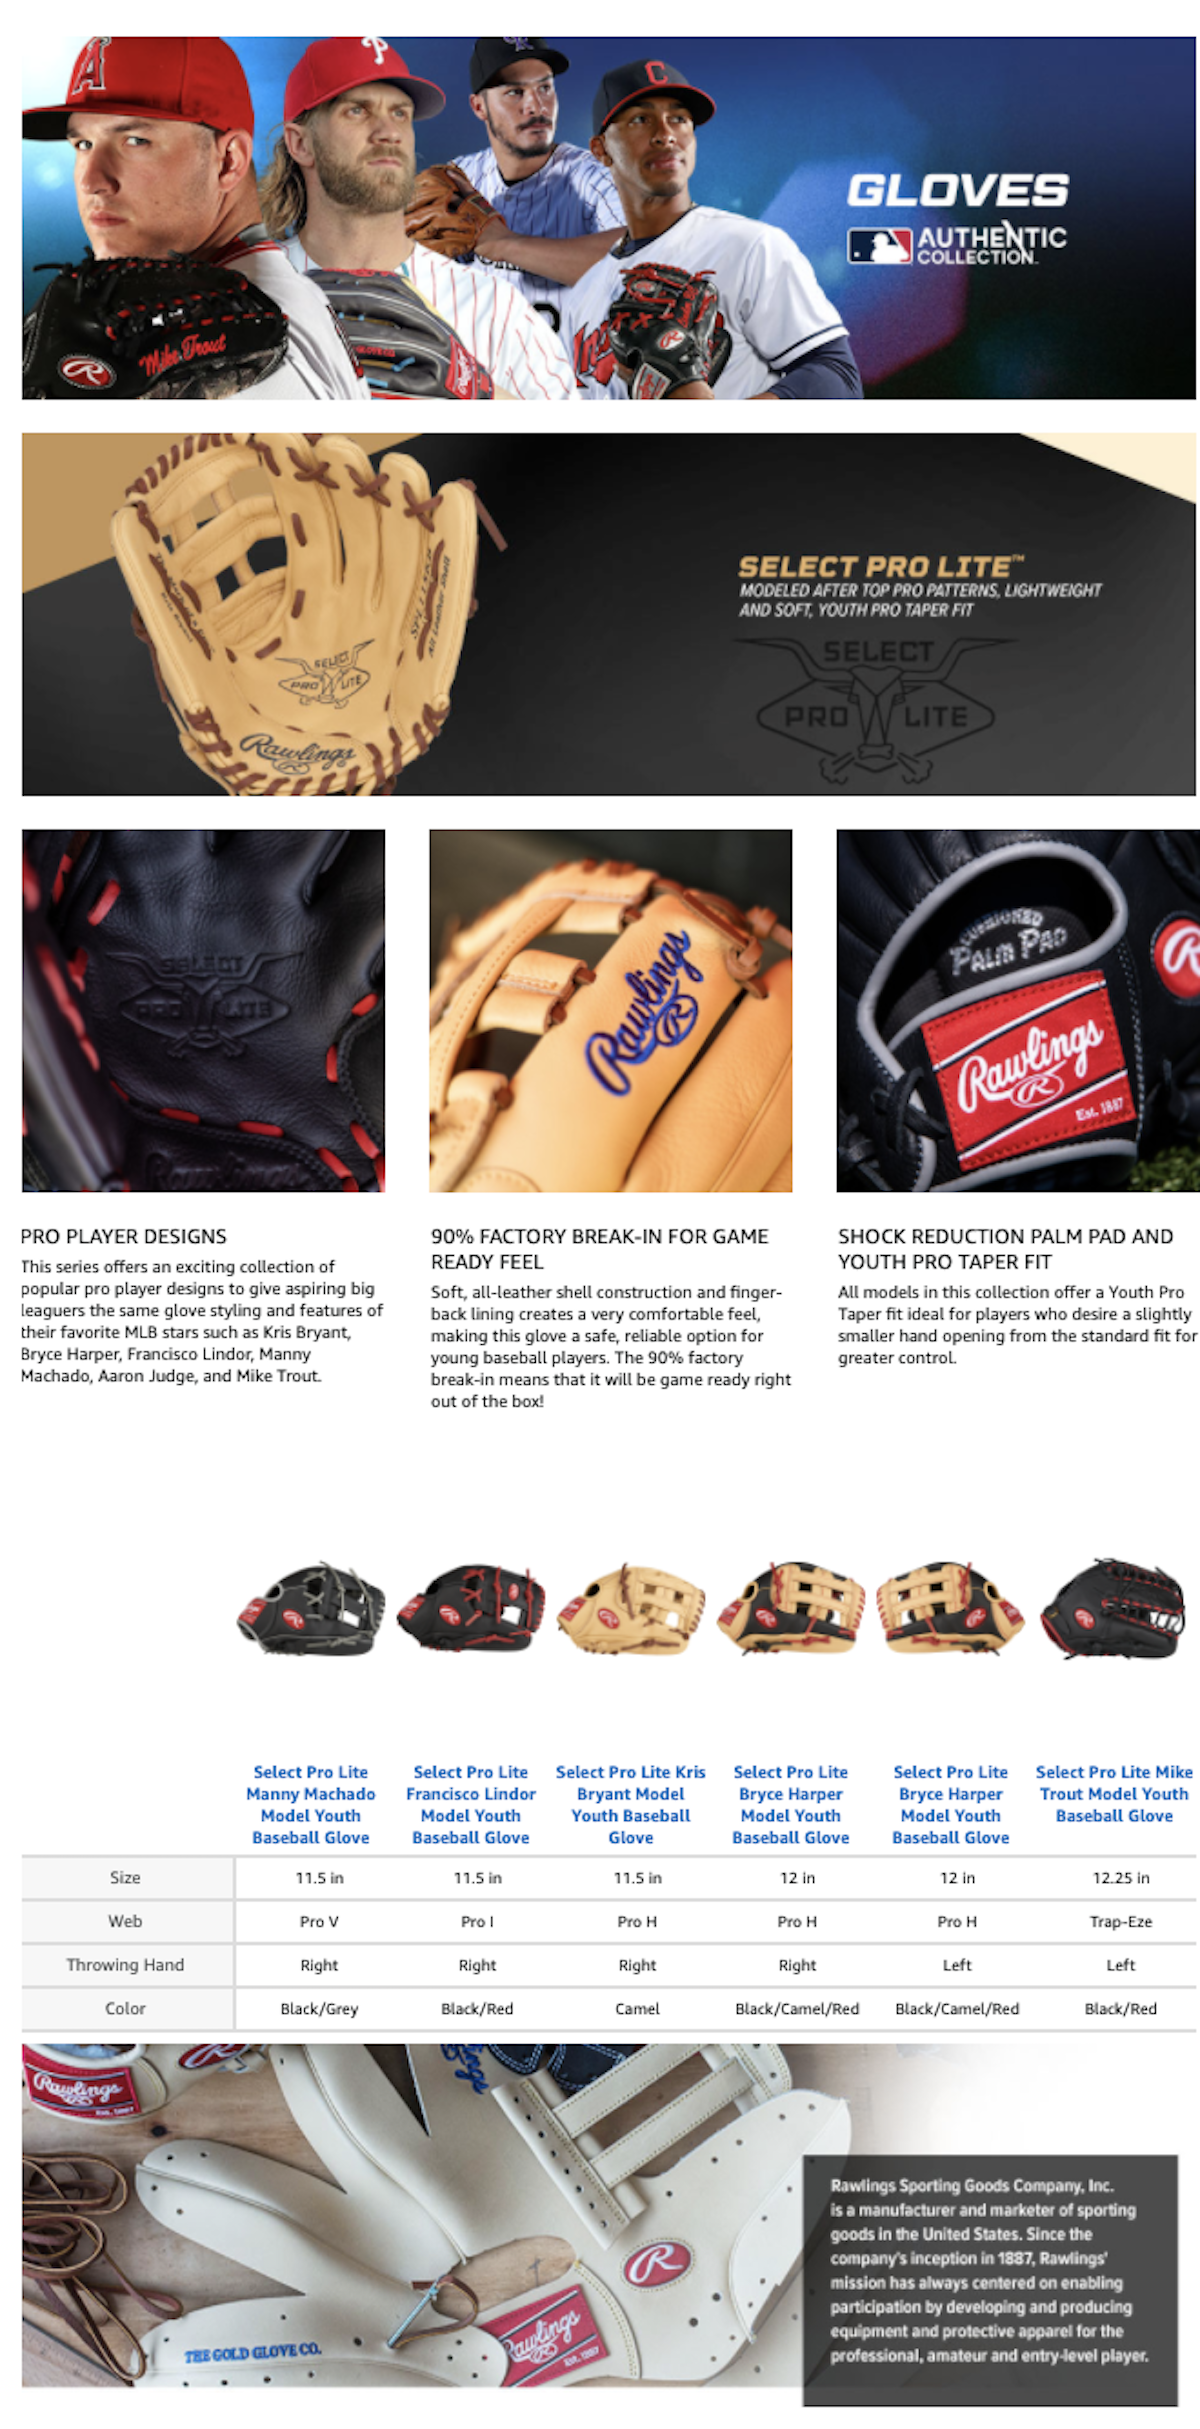 Rawlings Product Detail Page Amazon Screenshot Salsify Enhanced Content